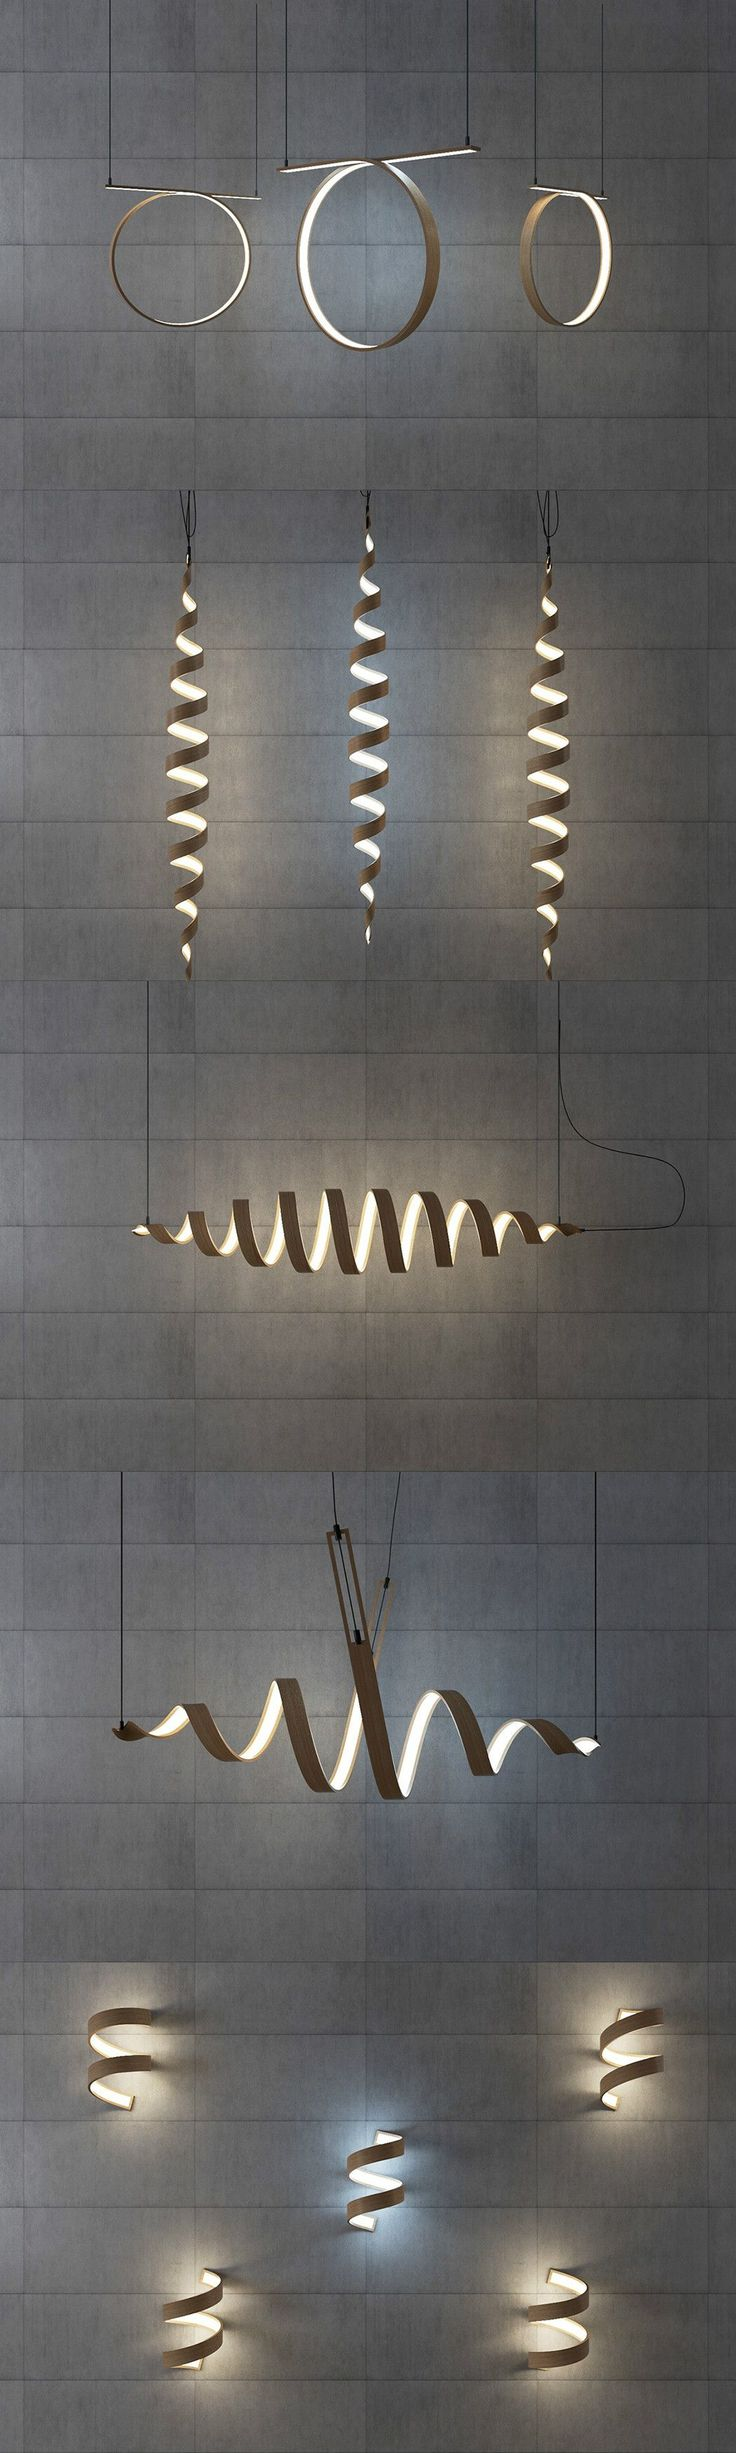 best 25 led lighting home ideas on pinterest used lighting a twist of light read more at yanko design